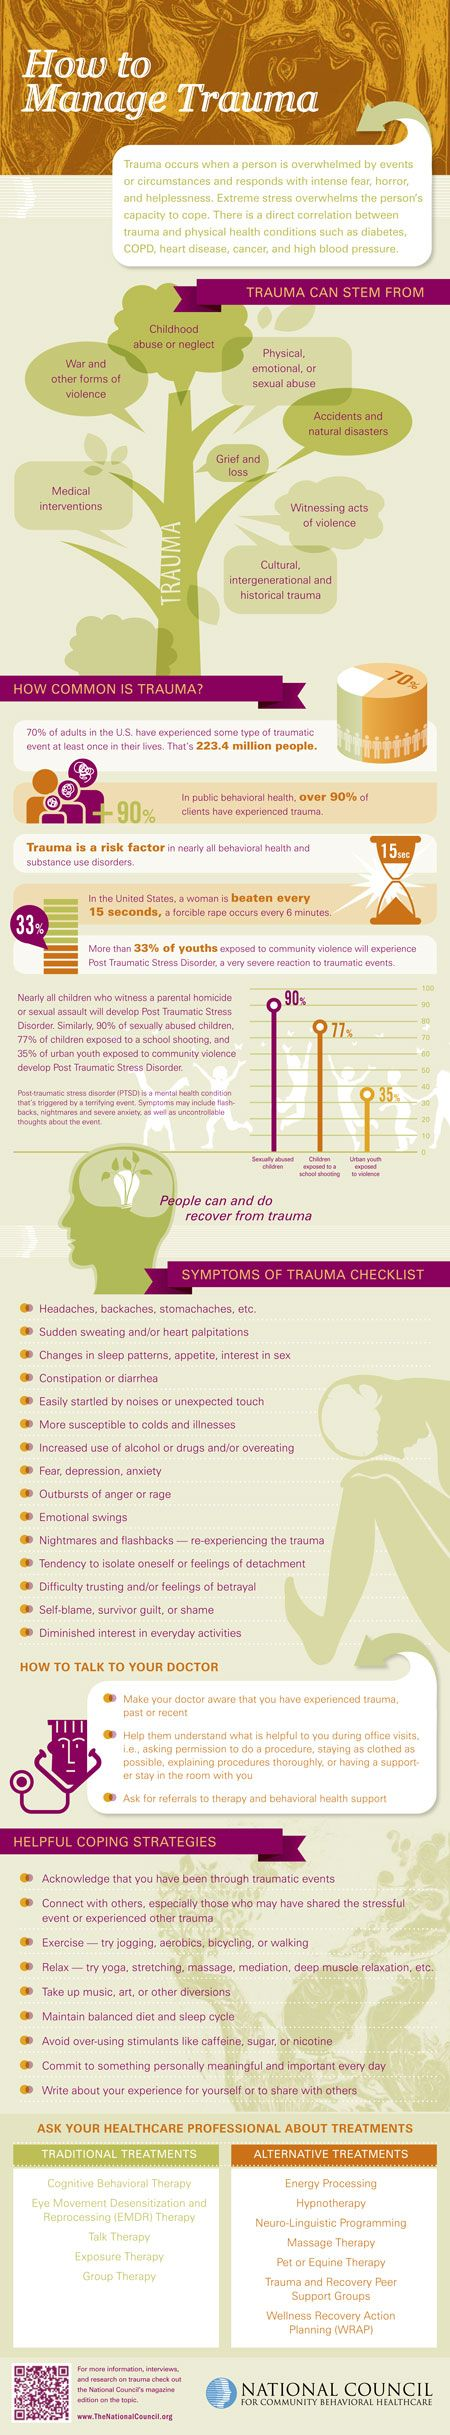 http://www.thehelpfulcounselor.com/wp-content/uploads/2012/12/Trauma-Infographic-web-imag-21.jpg